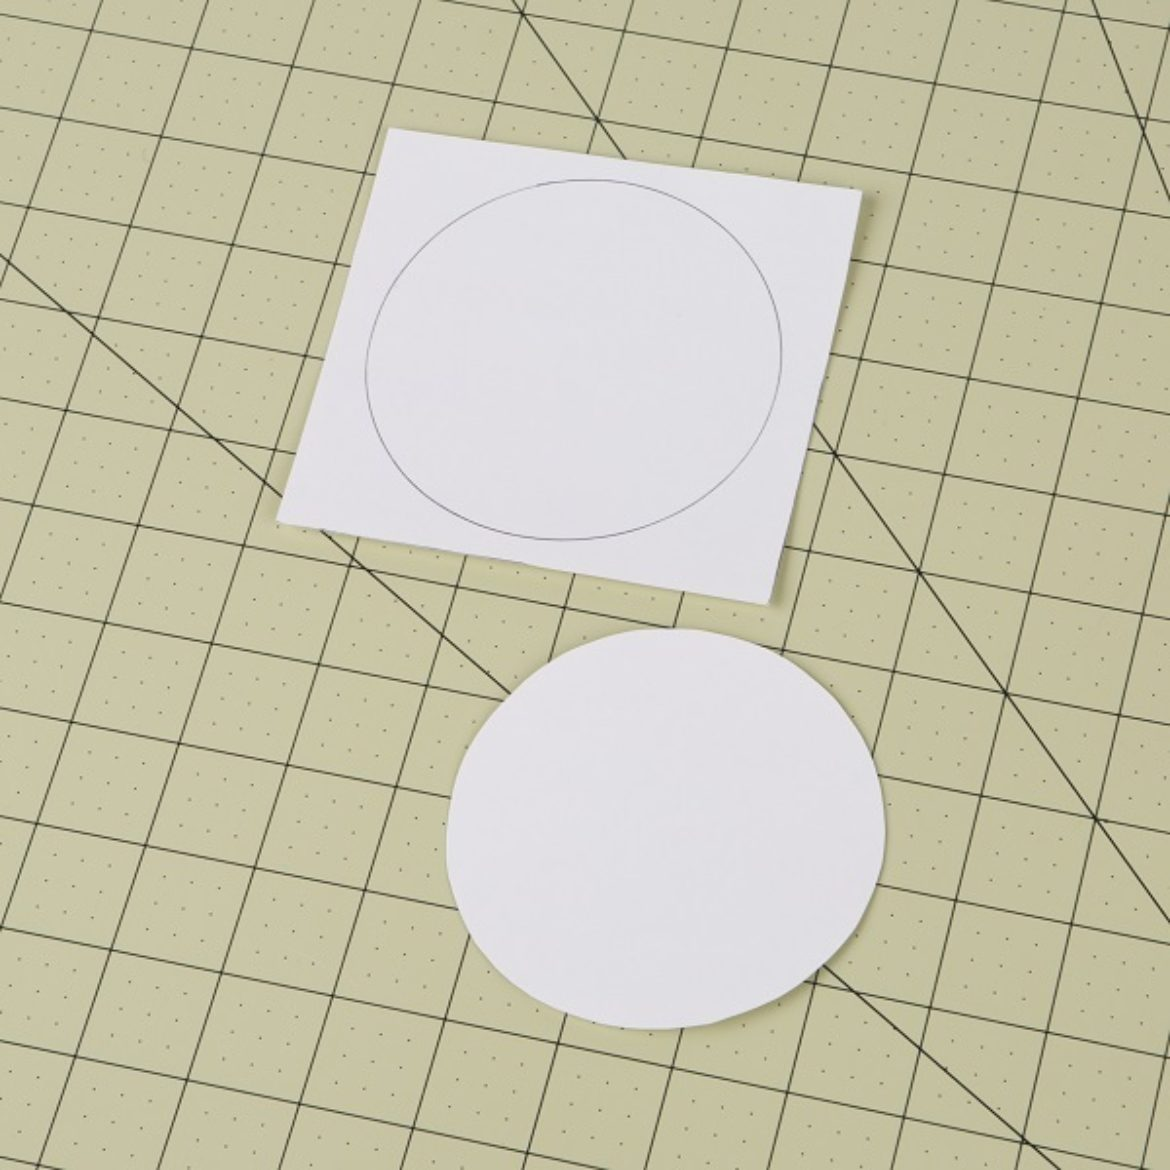 Circle cut out of a piece of cardstock